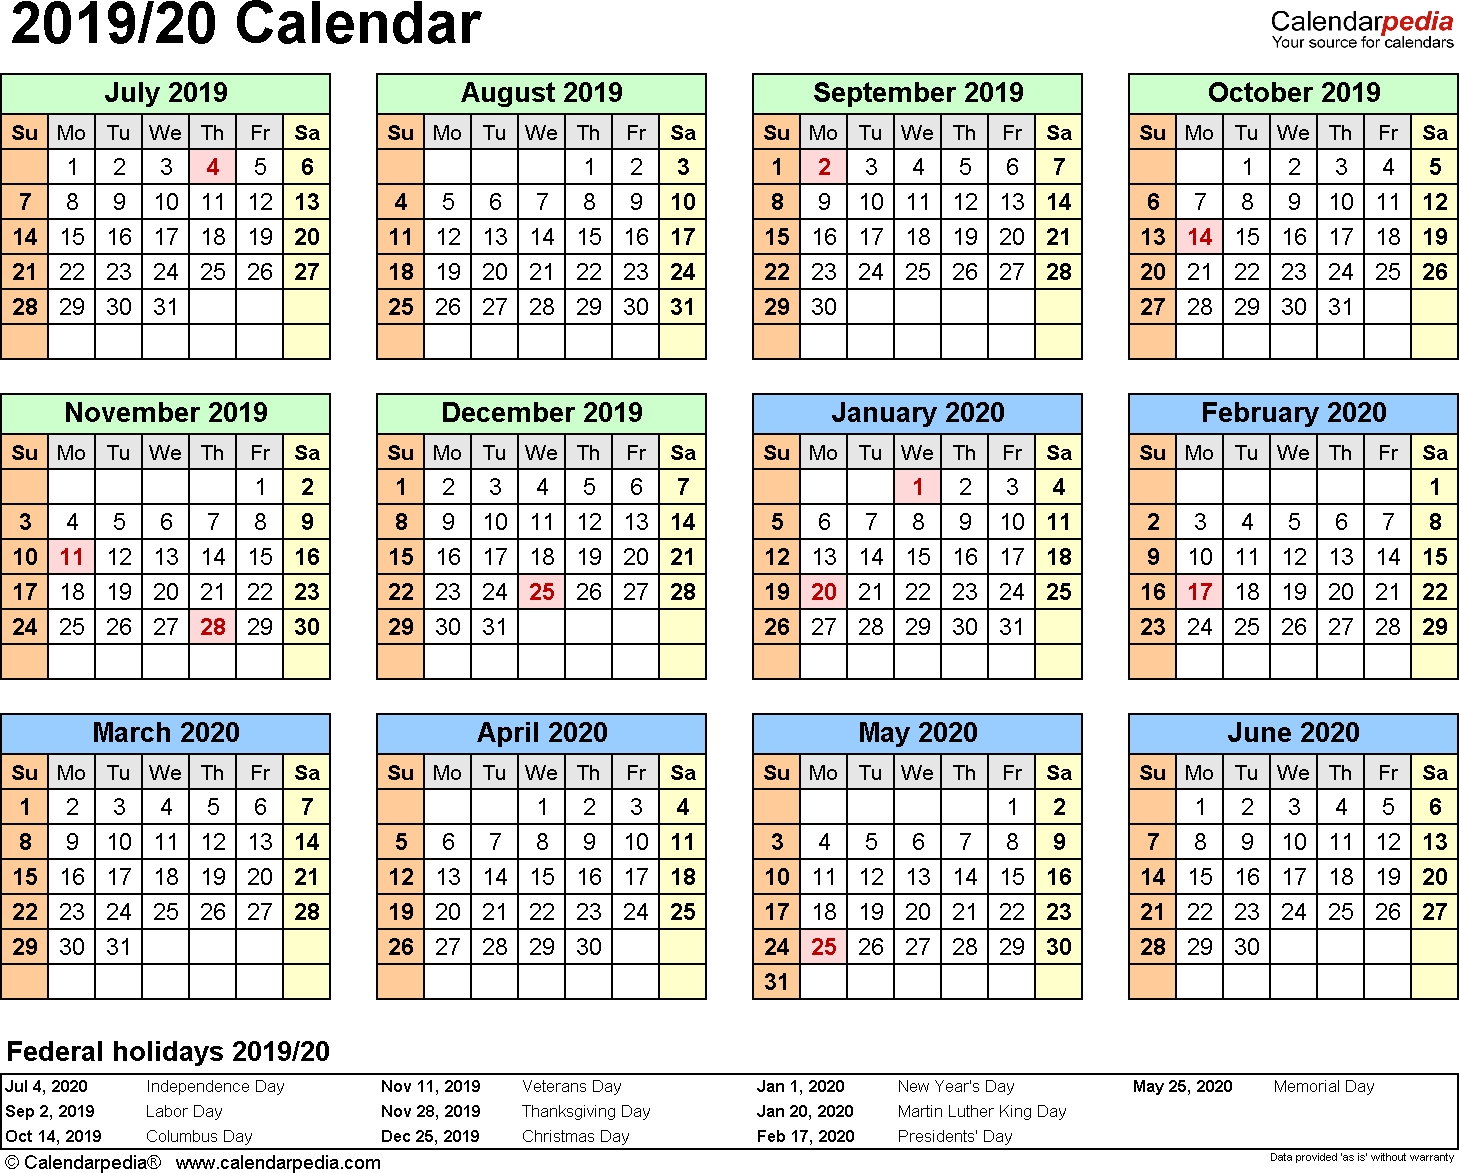 Split Year Calendar 2019/20 (July To June) - Pdf Templates in Calendar   July 2019 To June 2020